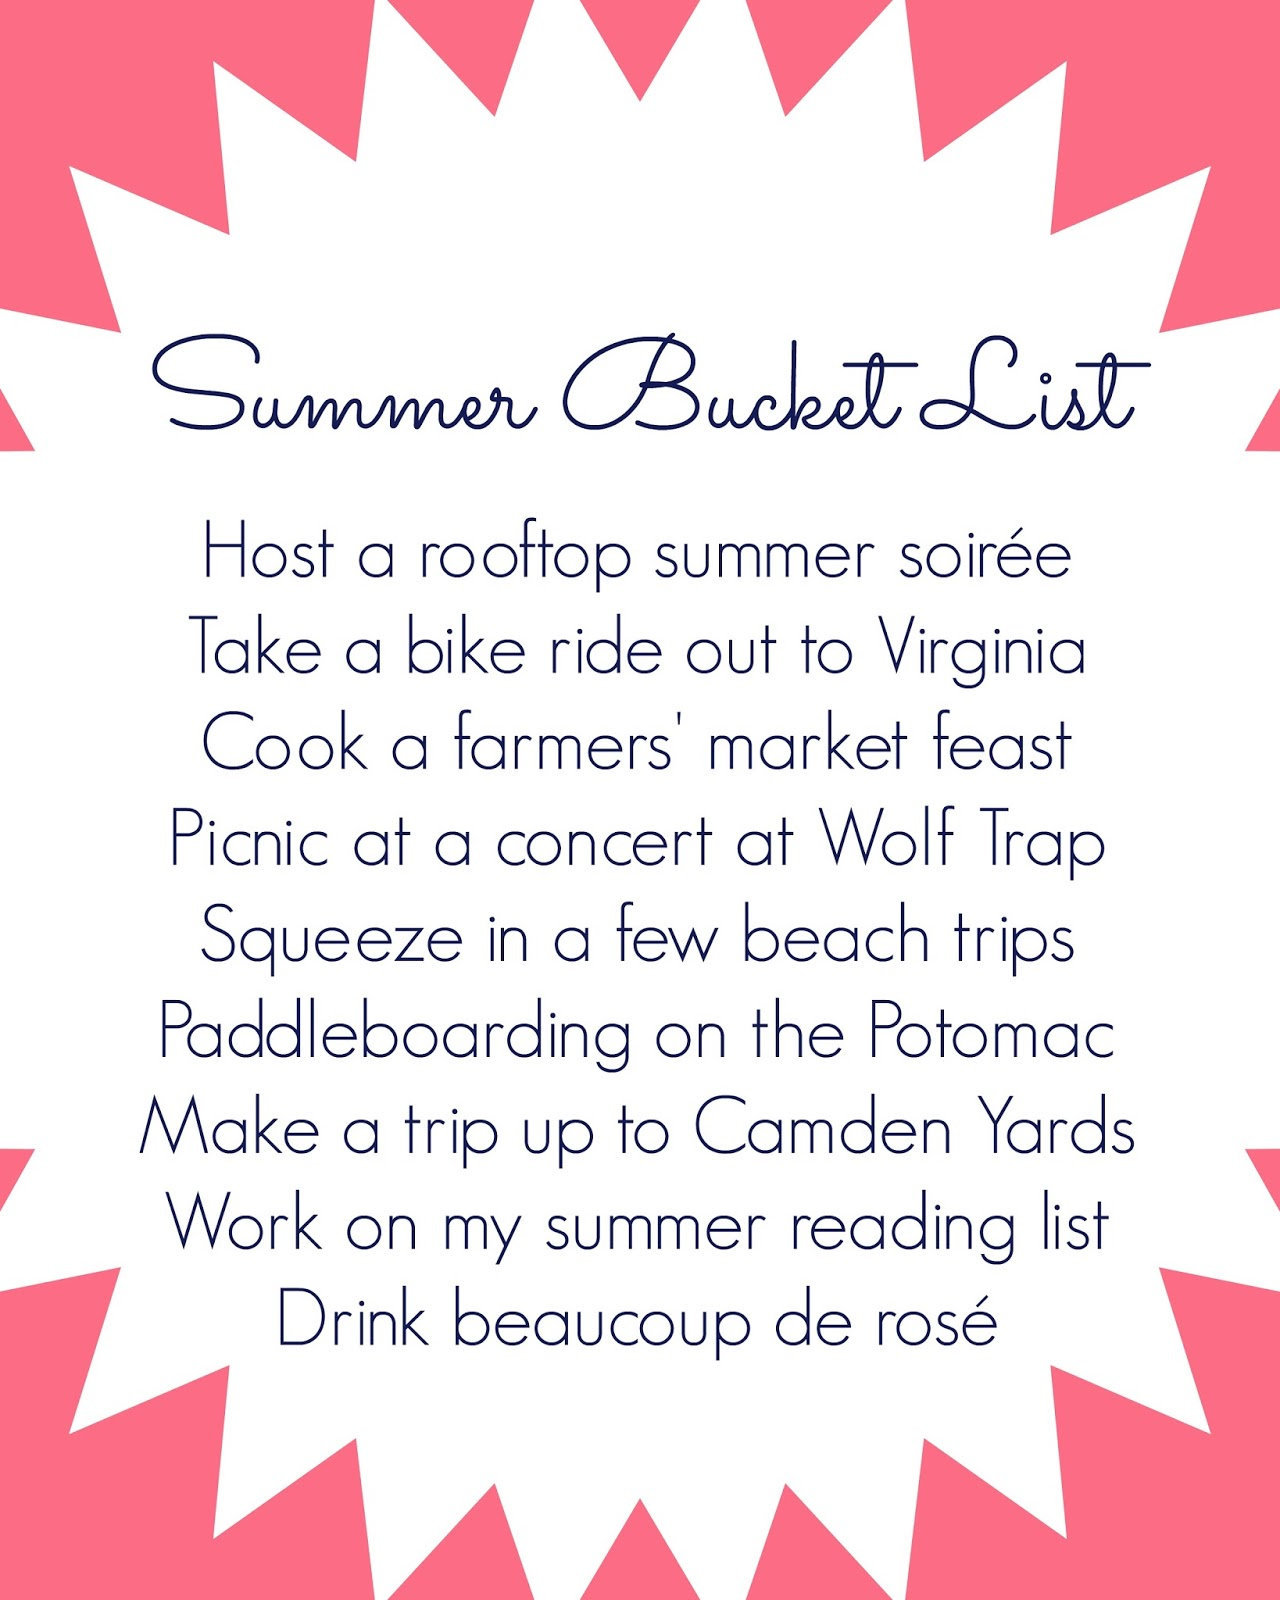 dc summer bucket list - summer things to do in DC